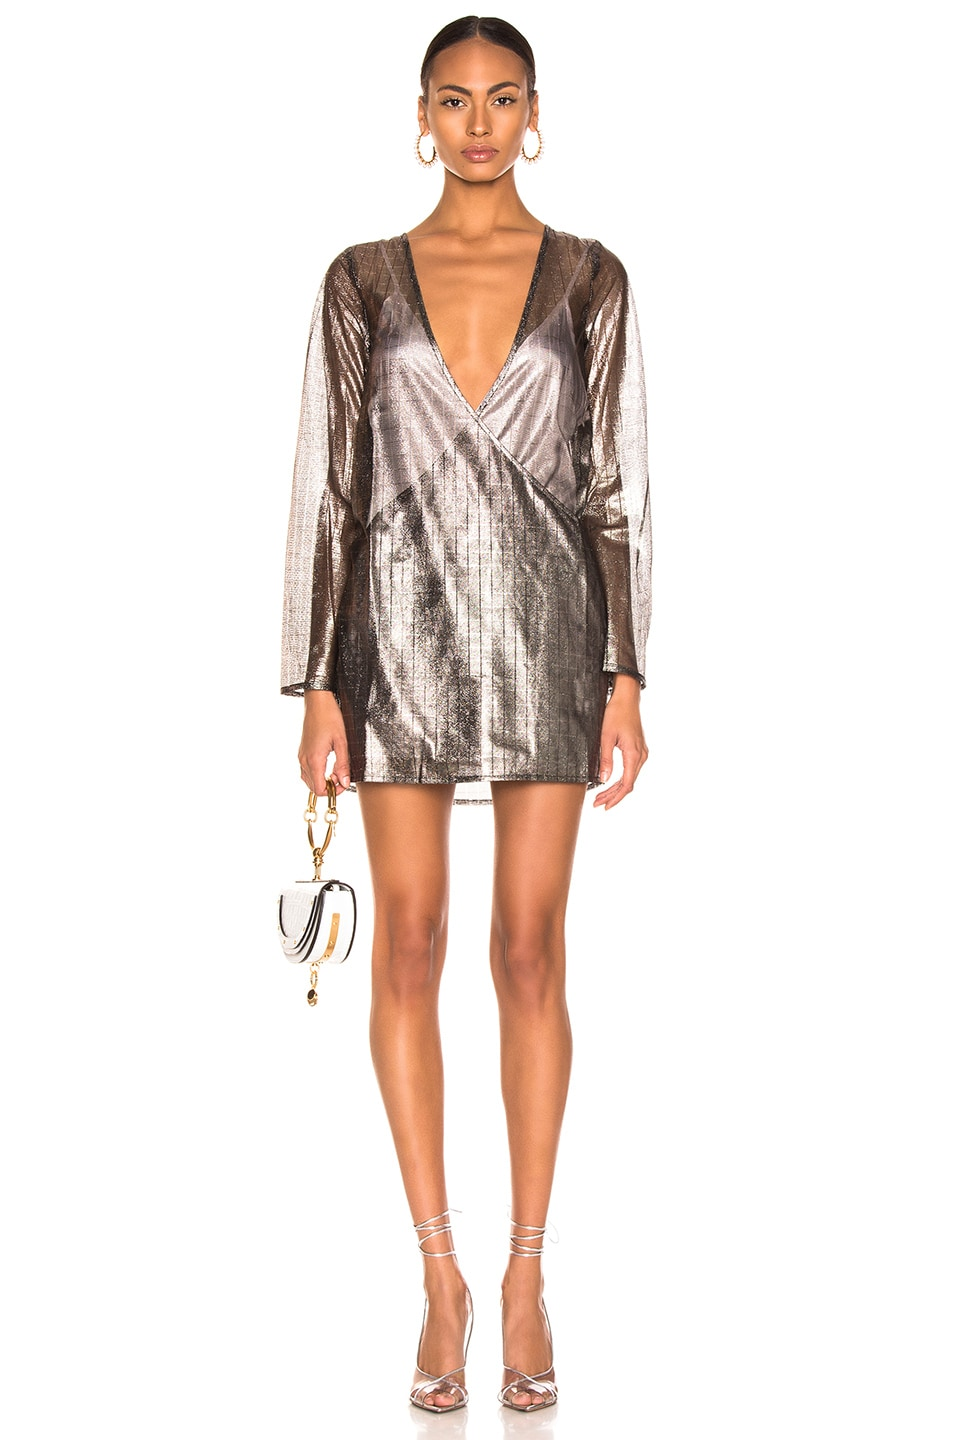 Image 1 of Atoir for FWRD One Of These Nights Dress in Metallic Pewter